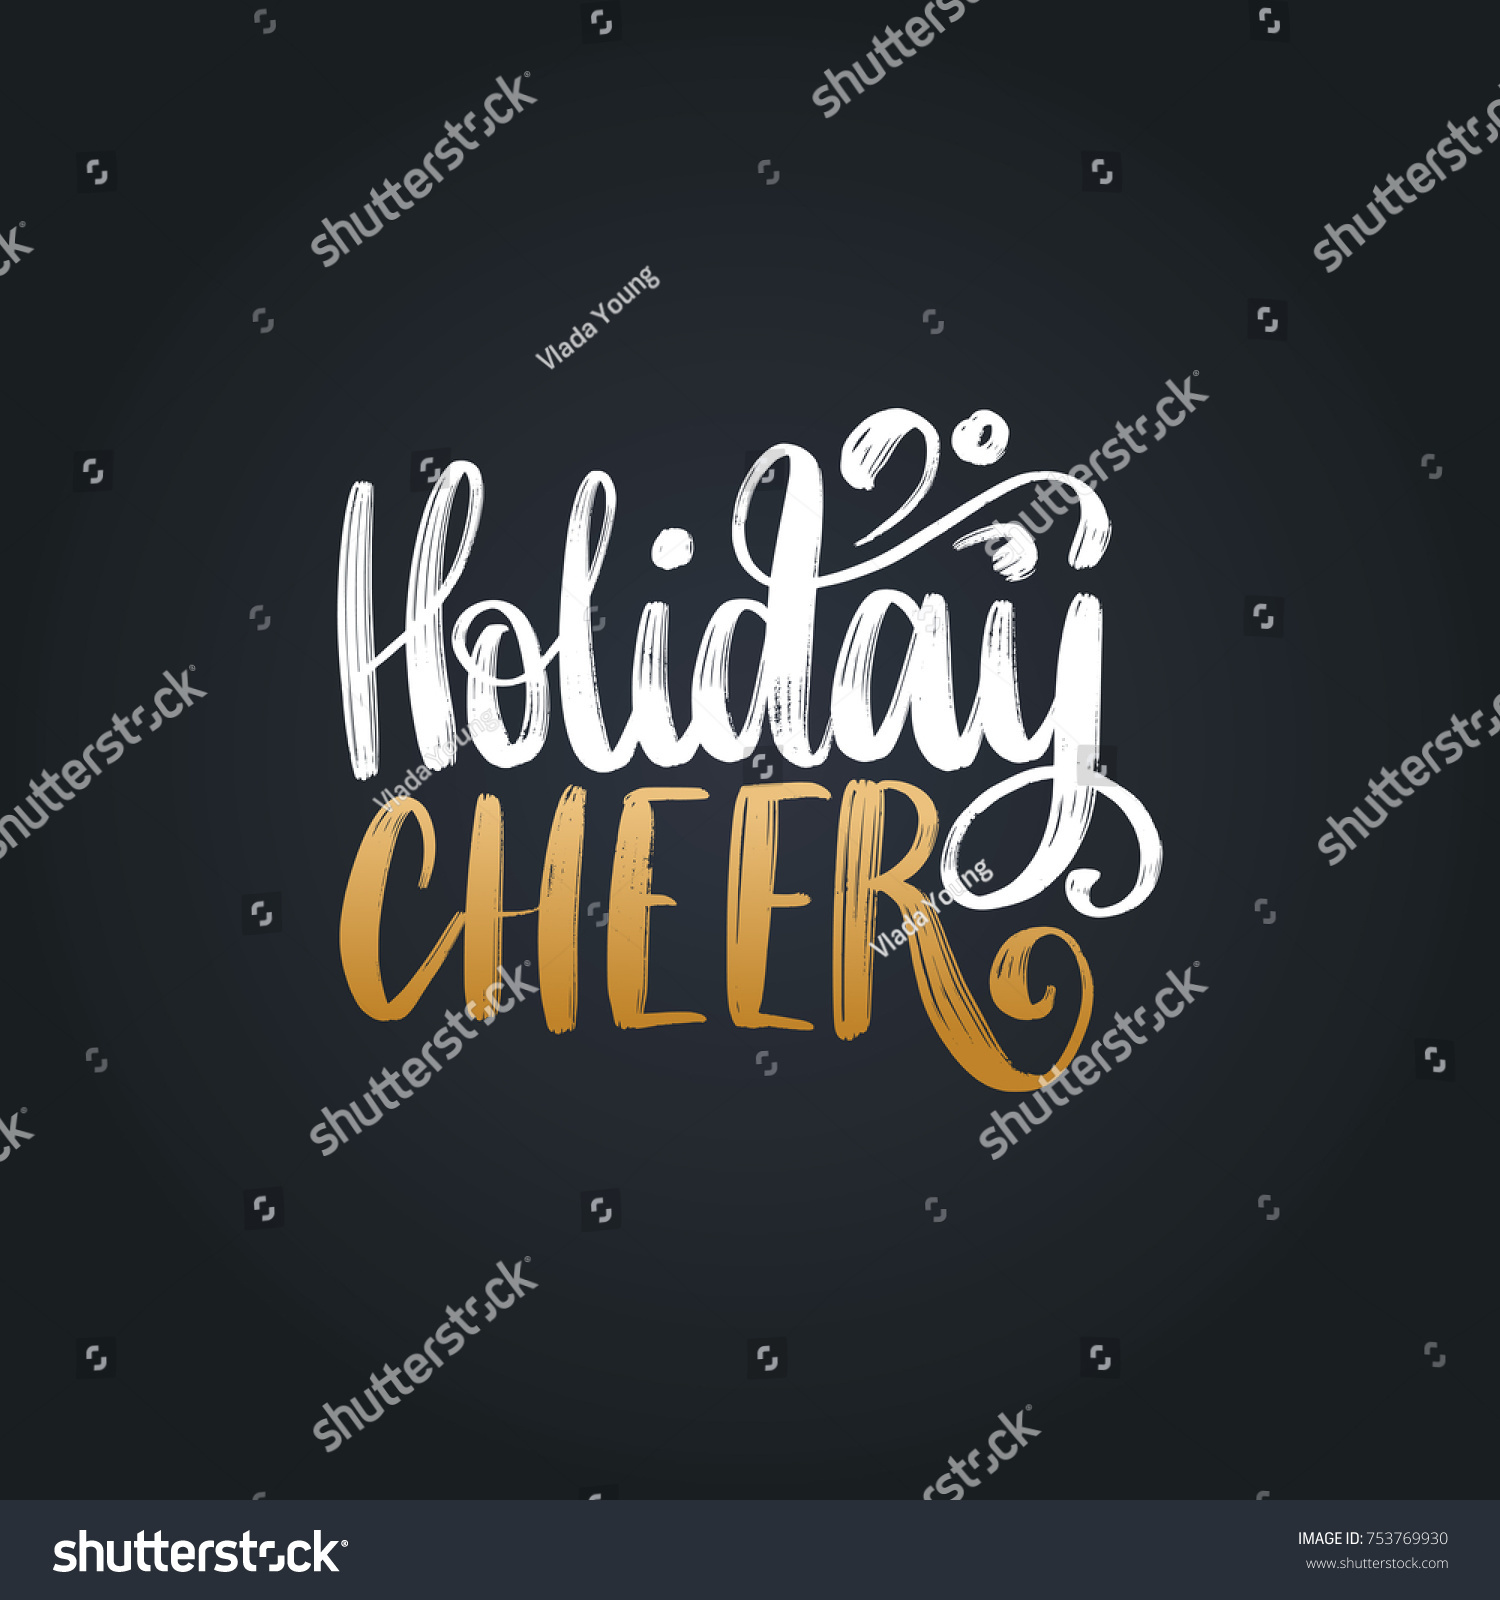 Holiday Cheer Lettering On Black Background Stock Vector HD (Royalty ...